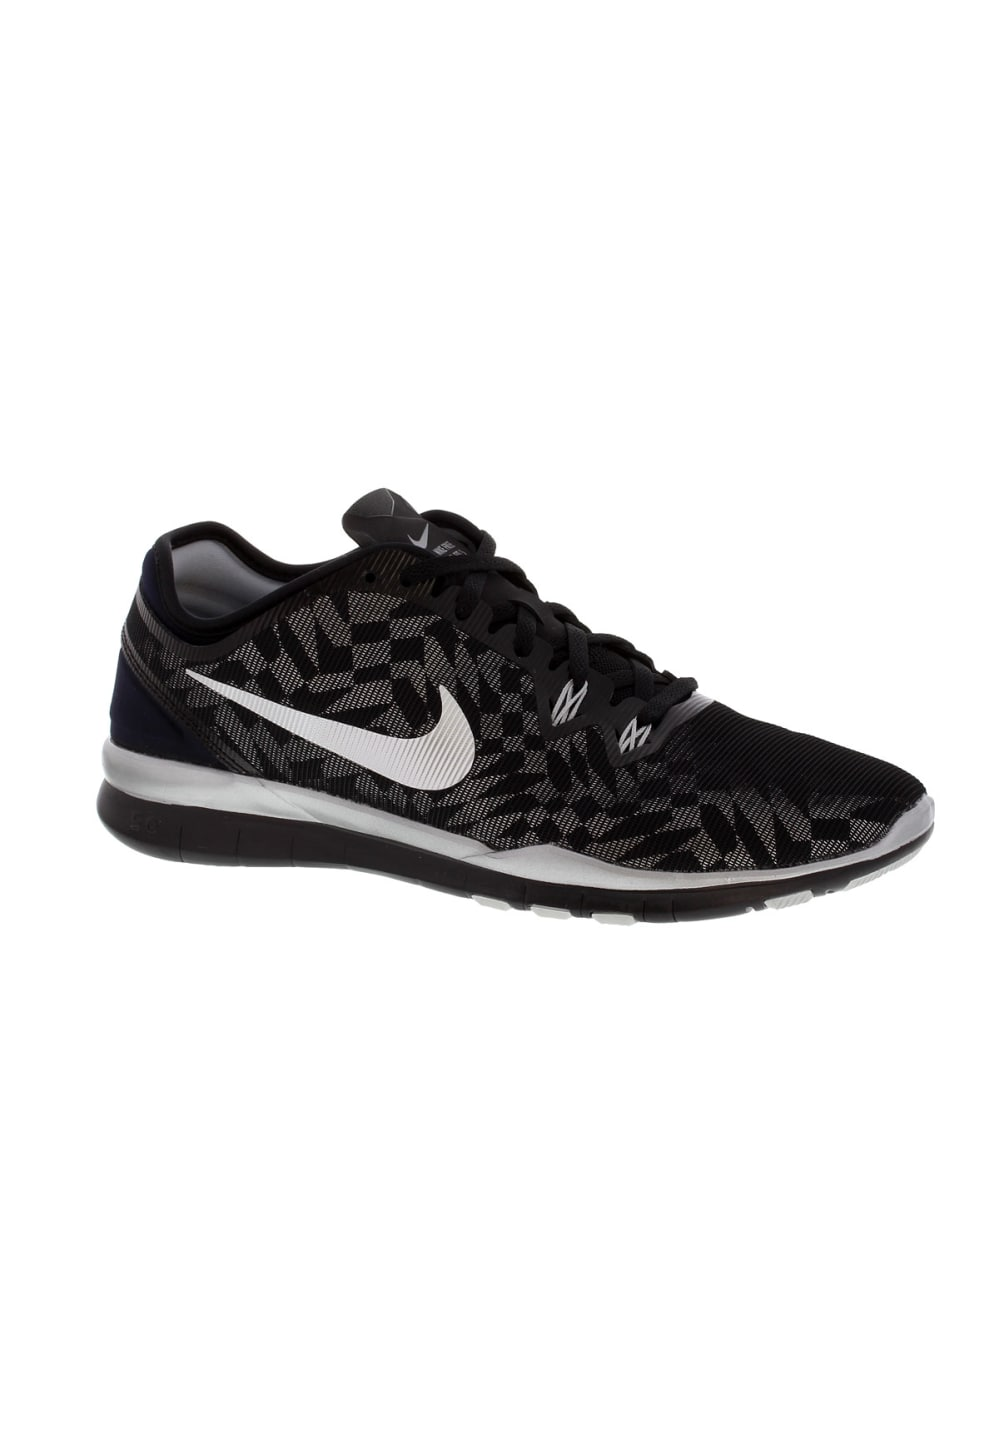 premium selection e7f62 fc858 Nike Free 5.0 Tr Fit 5 Metallic - Running shoes for Women - Black